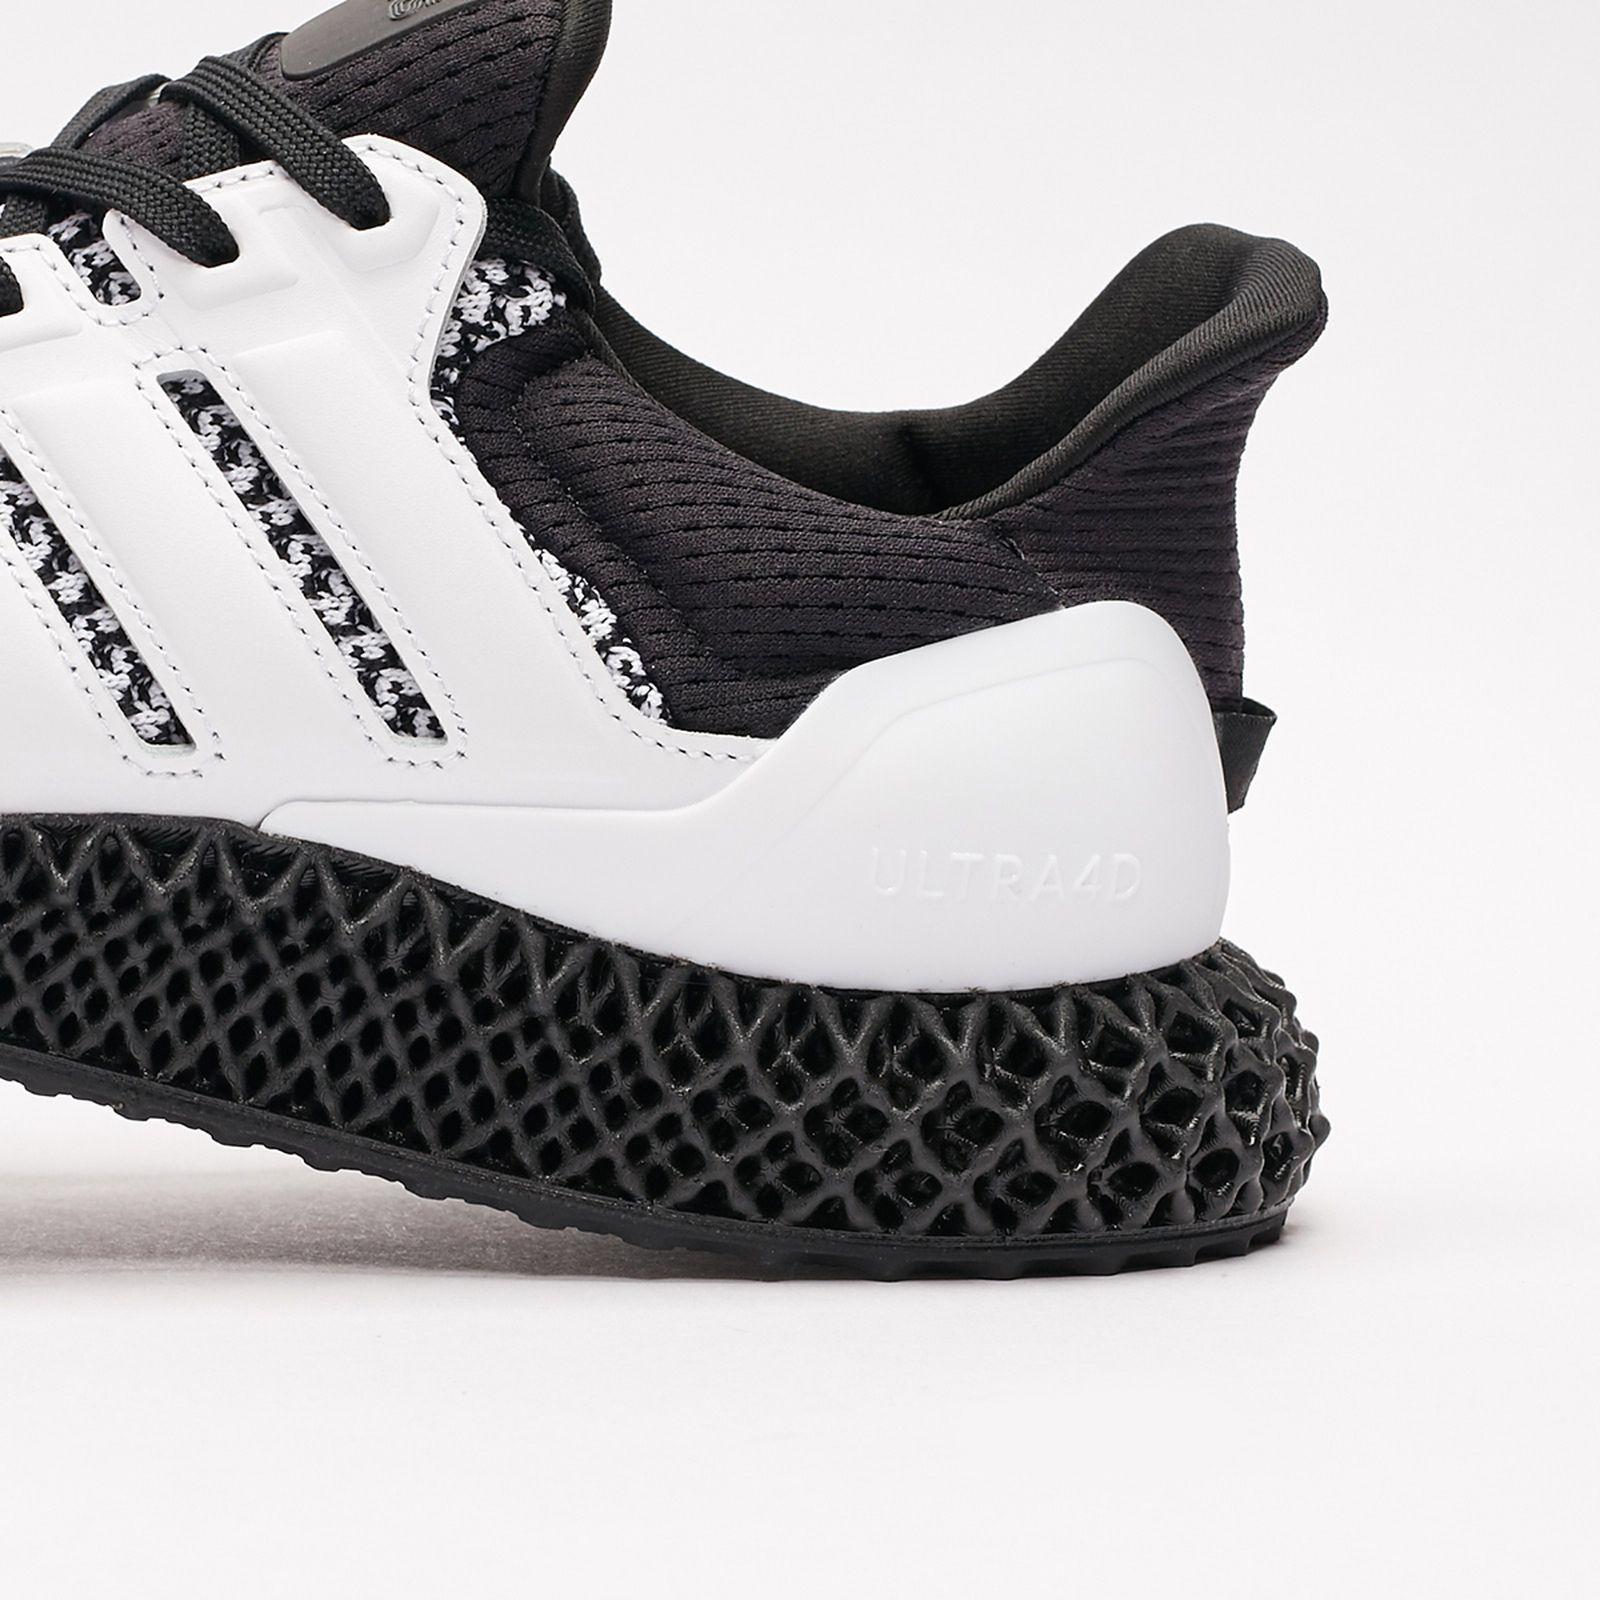 sns-adidas-ultra-4d-tee-time-release-date-price-1-146